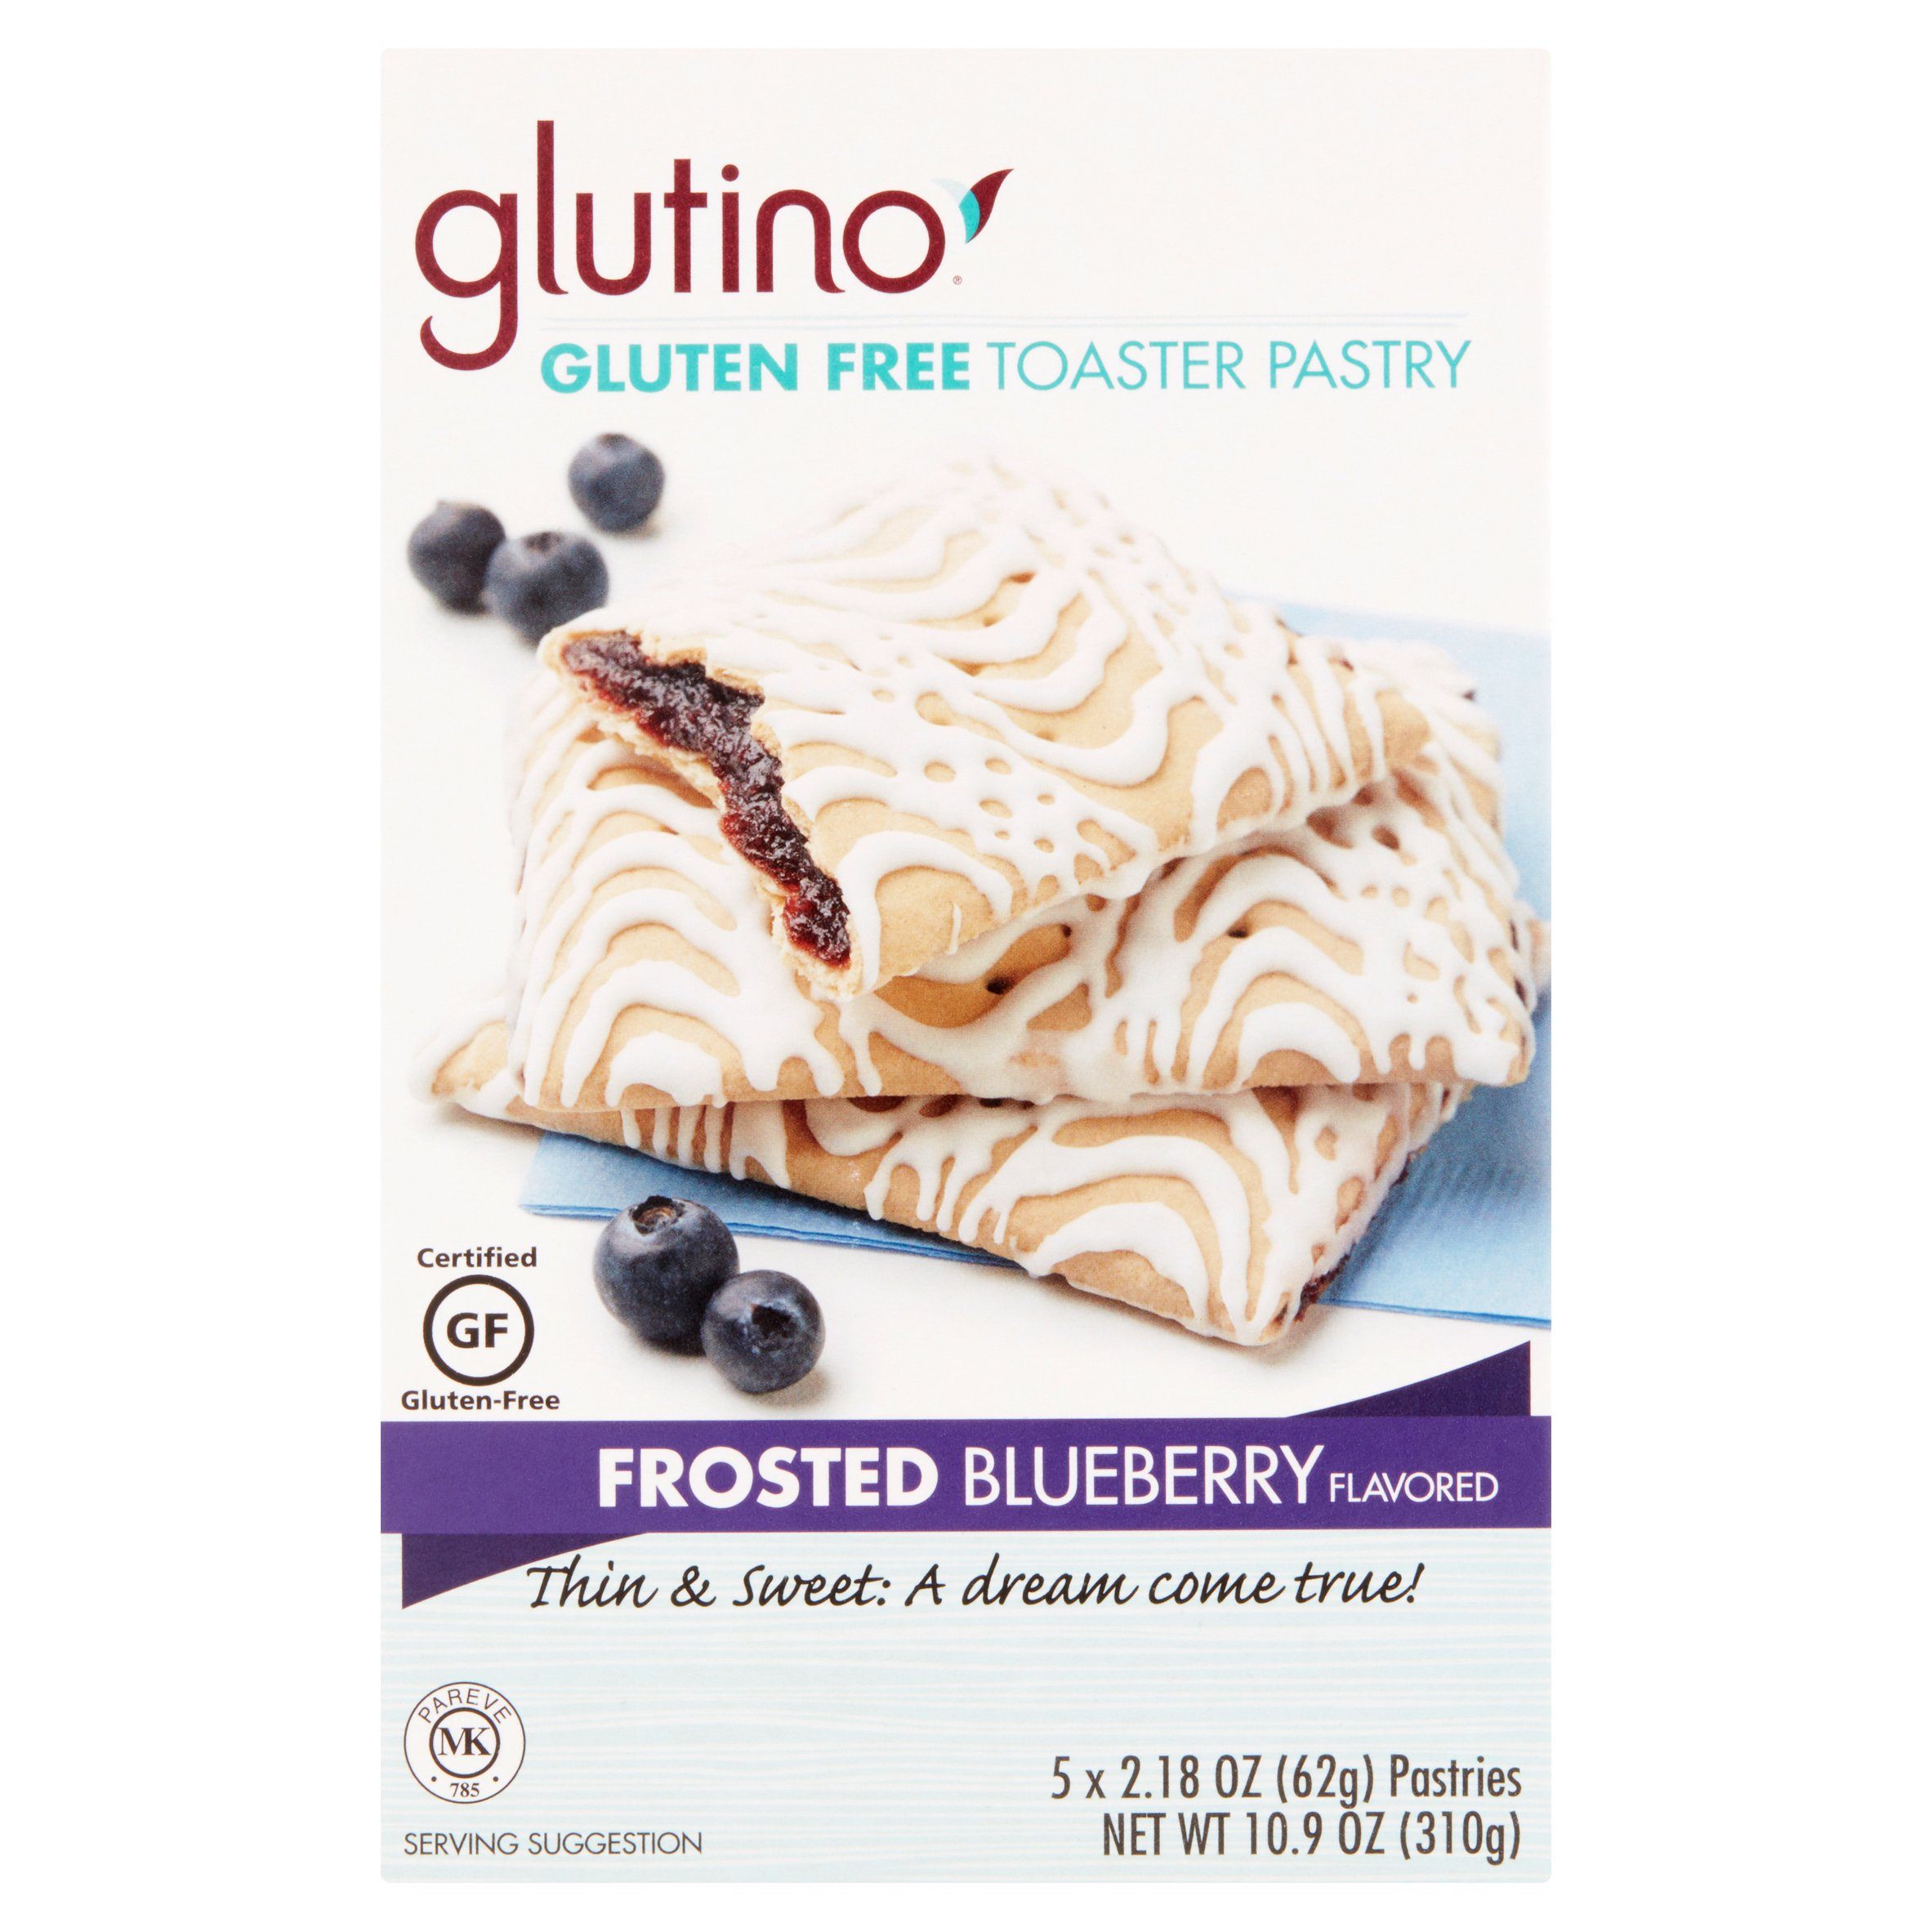 Glutino Frosted Blueberry Flavored Pastries, 2.18 oz, 6 pack by Glutino, a division of Boulder Brands USA, Inc.